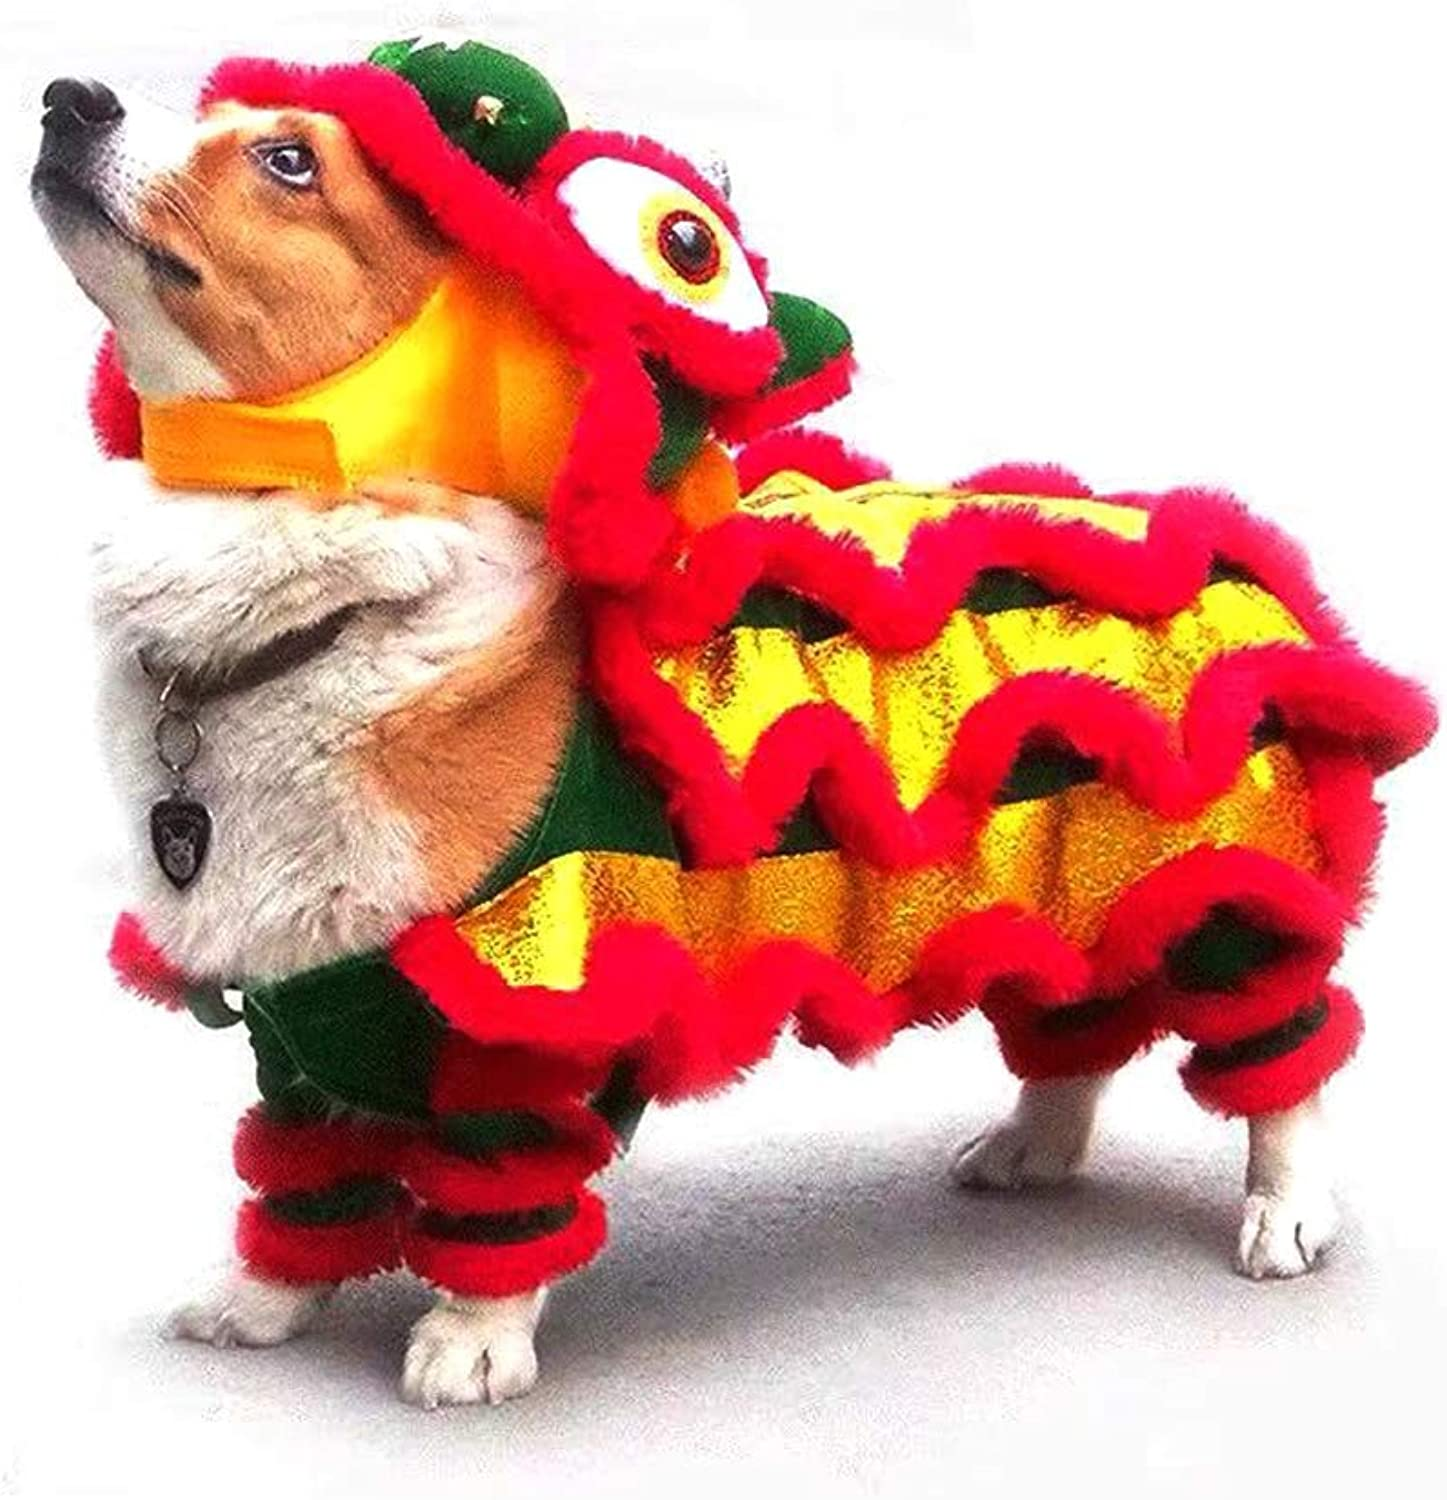 Fanny Dog Costume Lion Dance Dragon dance Clothing Apparel,Pet Festive Costume Dress Clothes For Small Medium Large Dog for Halloween Christmas Easter Cosplay Party Activity,Dog NOT Included  (L, Red)